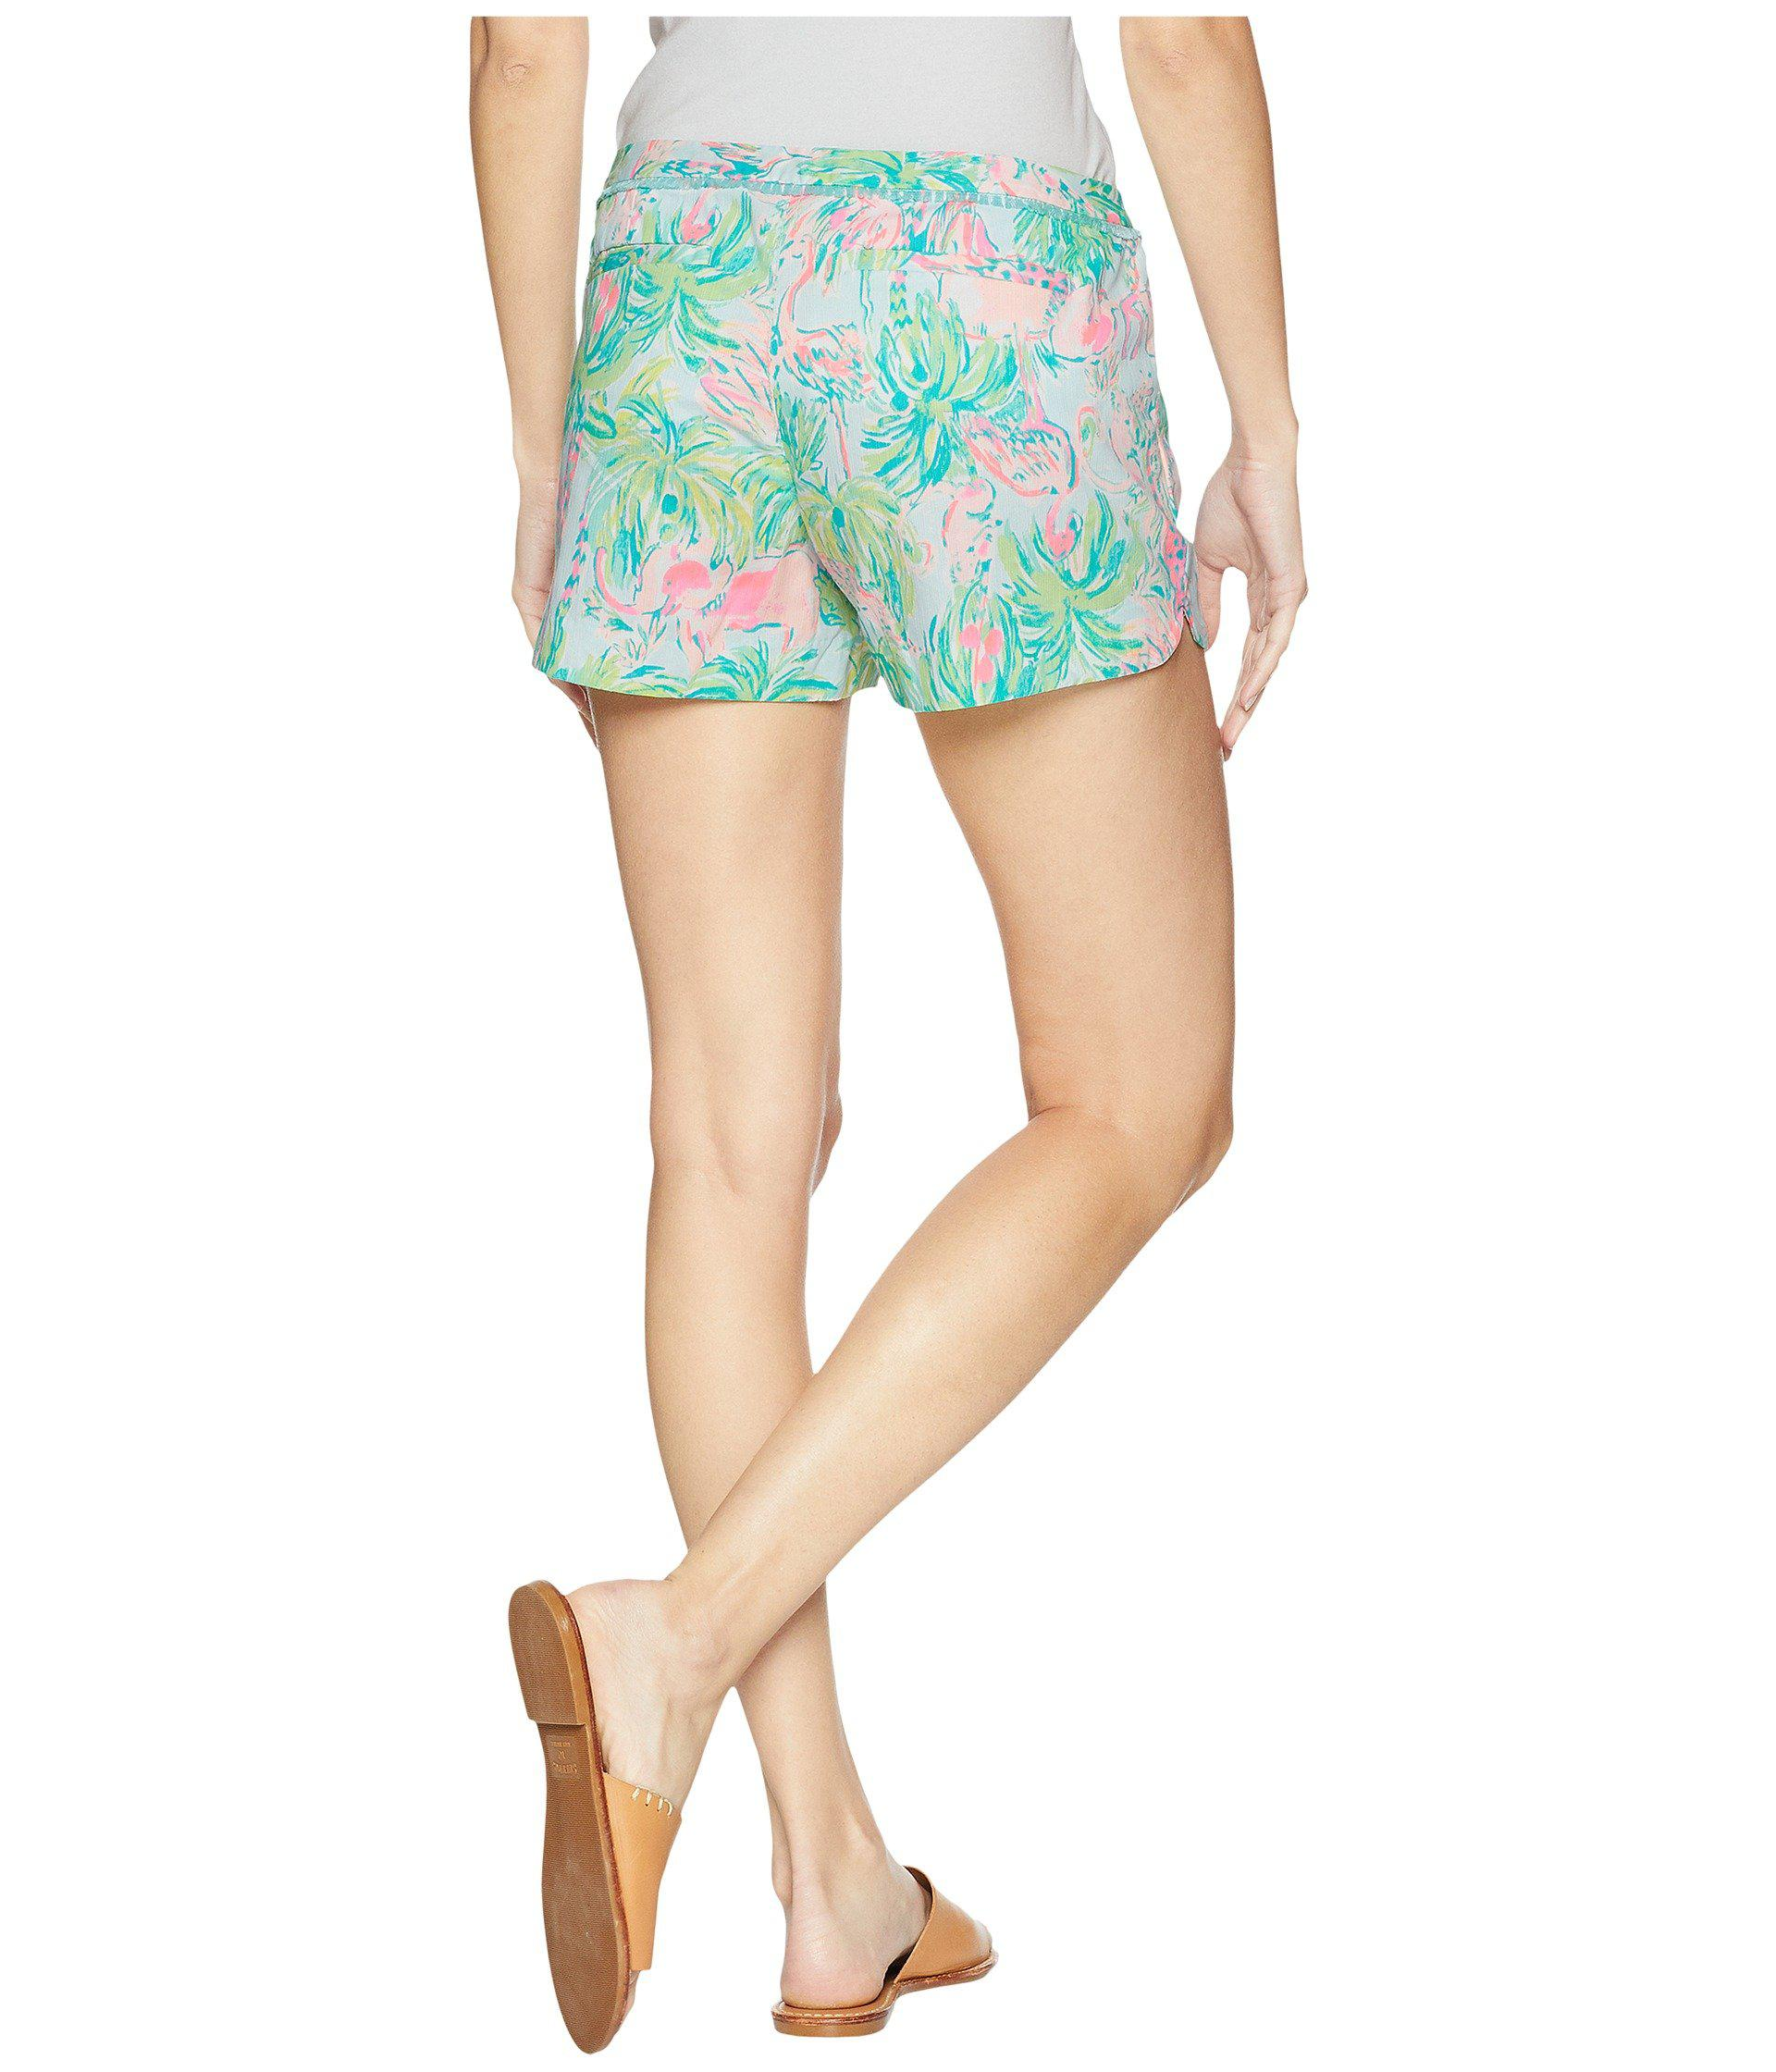 Lilly Pulitzer Womens Adie Shorts Seasalt Blue On Parade 0 4